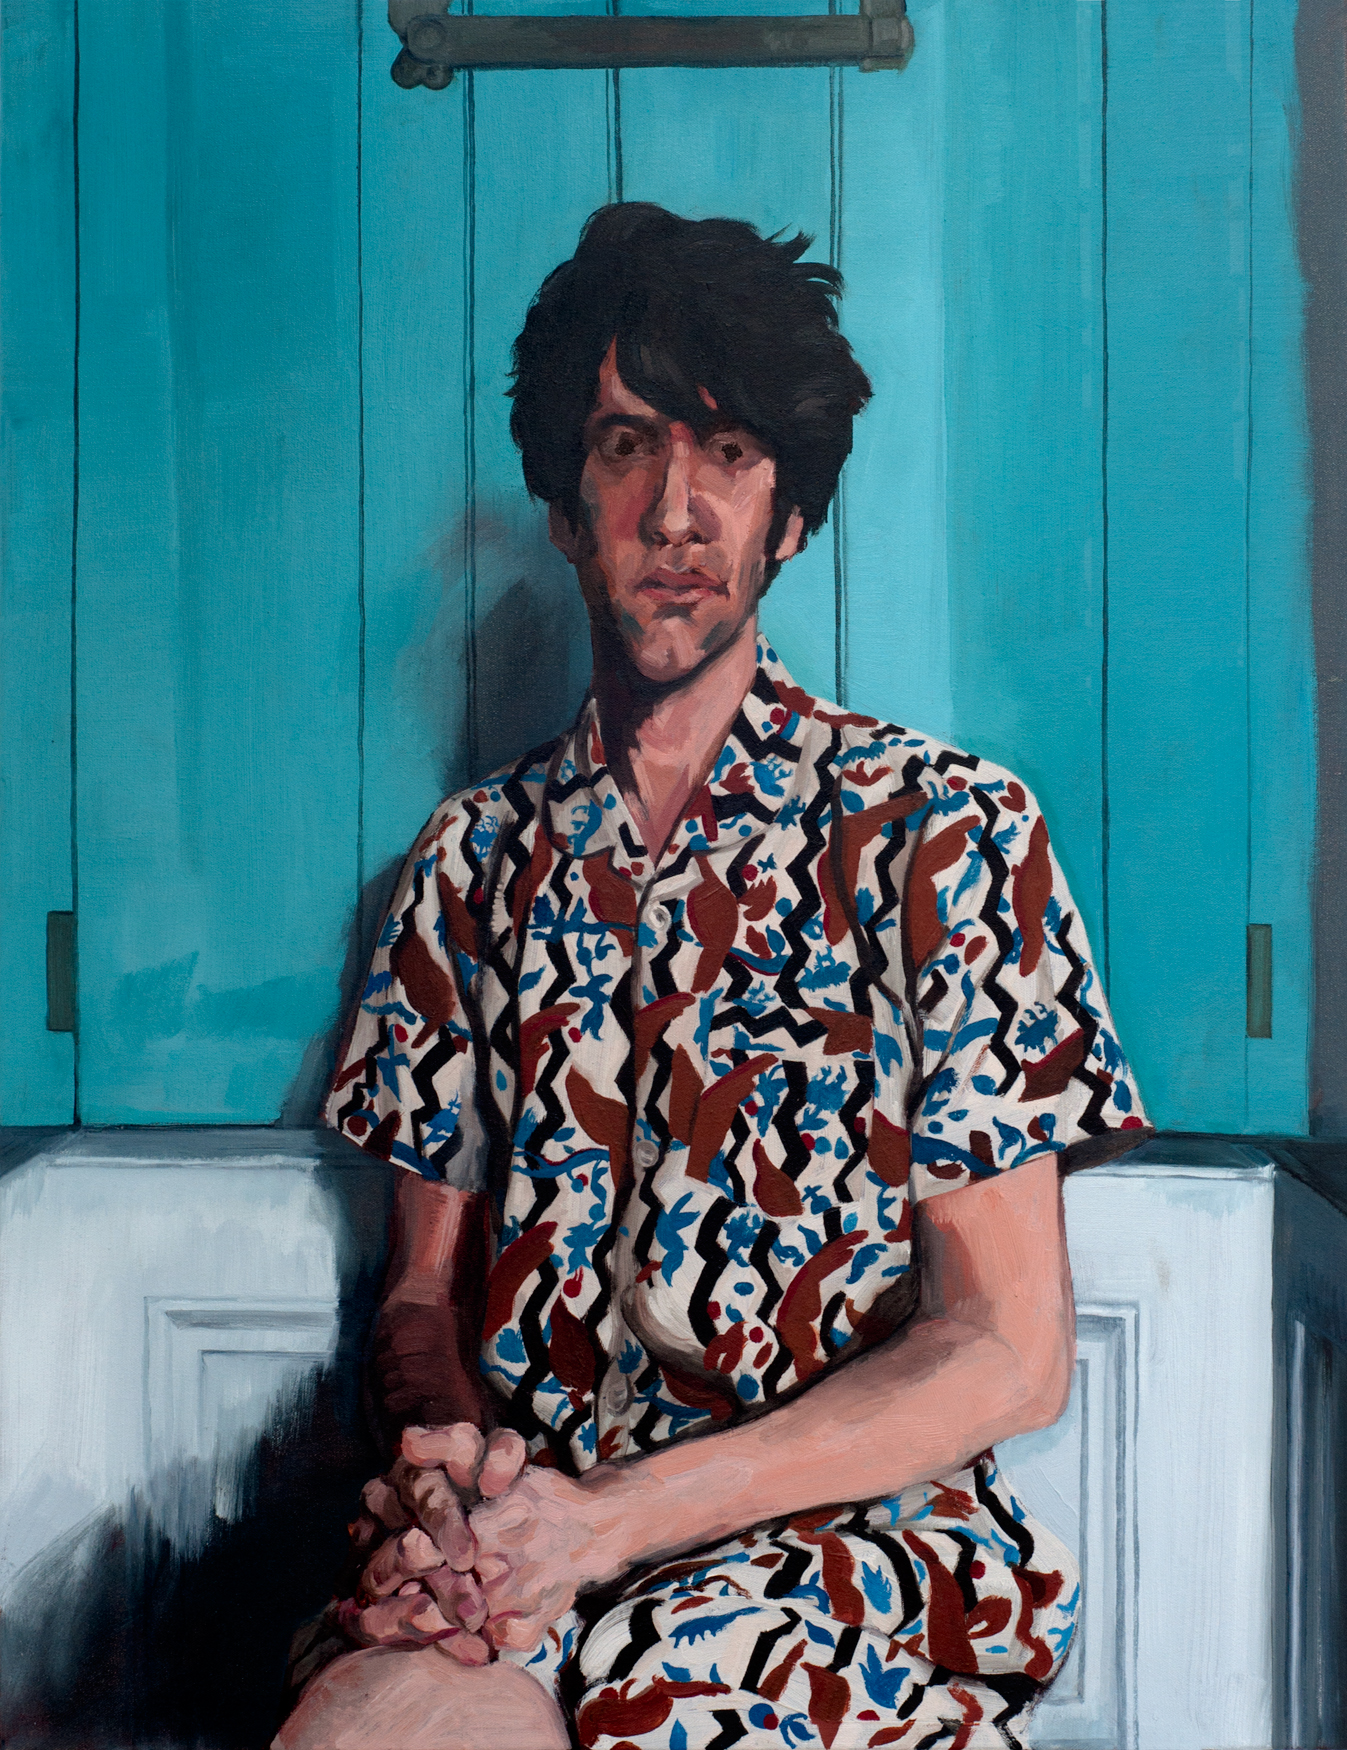 SPA 2017 Exhibition, Self-portrait in pyjamas, 76.2 x 101.6 cm, Oil on canvas, £750  All rights reserved